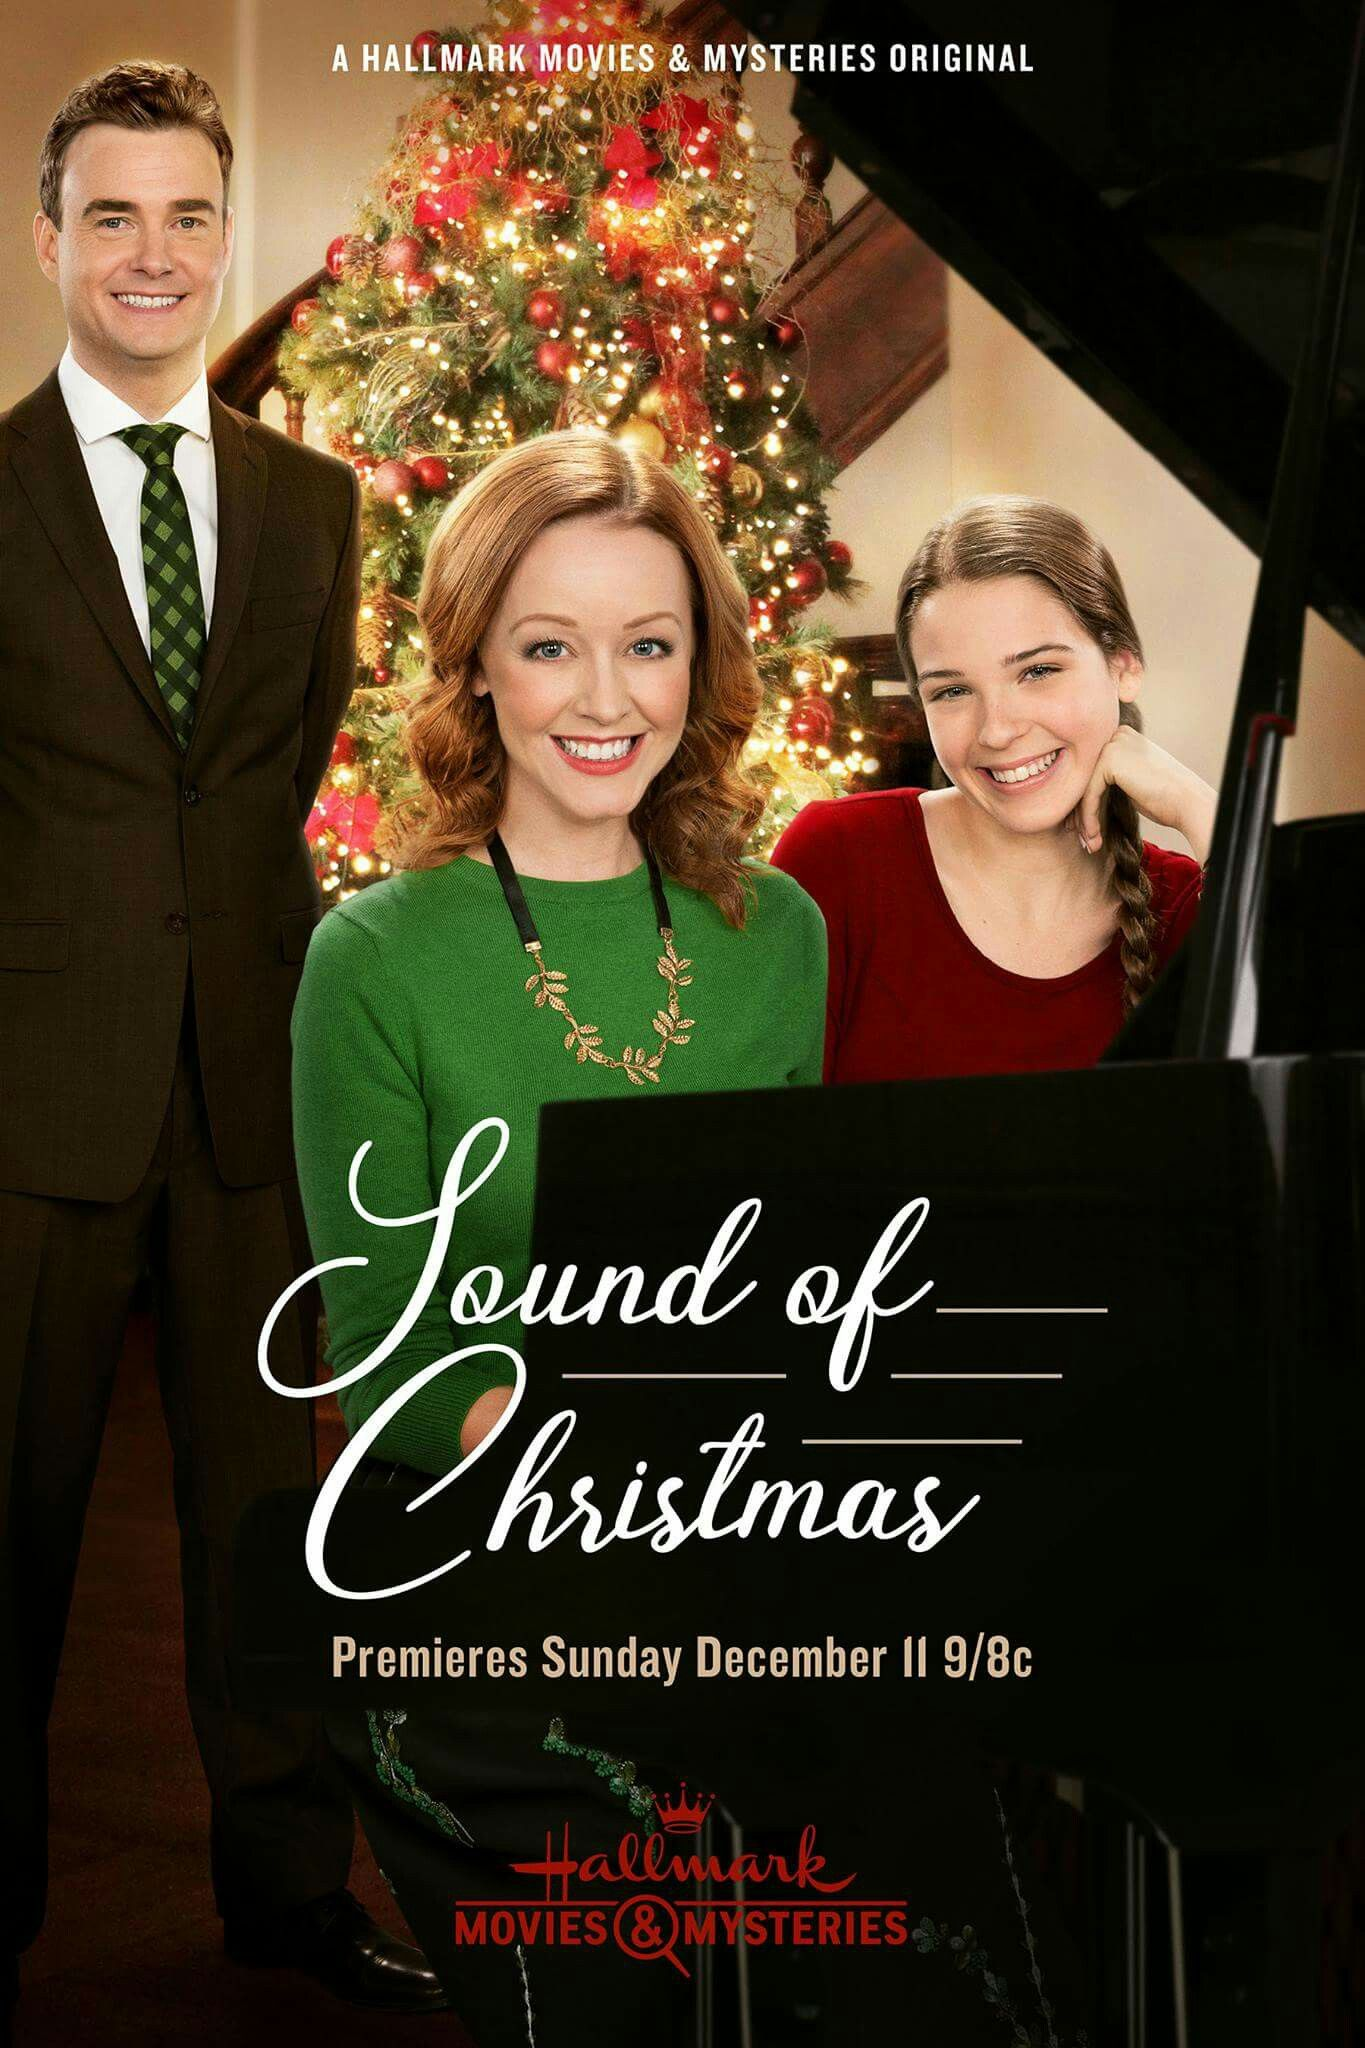 Pin By Lorie Ortiz On Great Hallmark Movies Streaming Movies Christmas Movies Full Movies Online Free